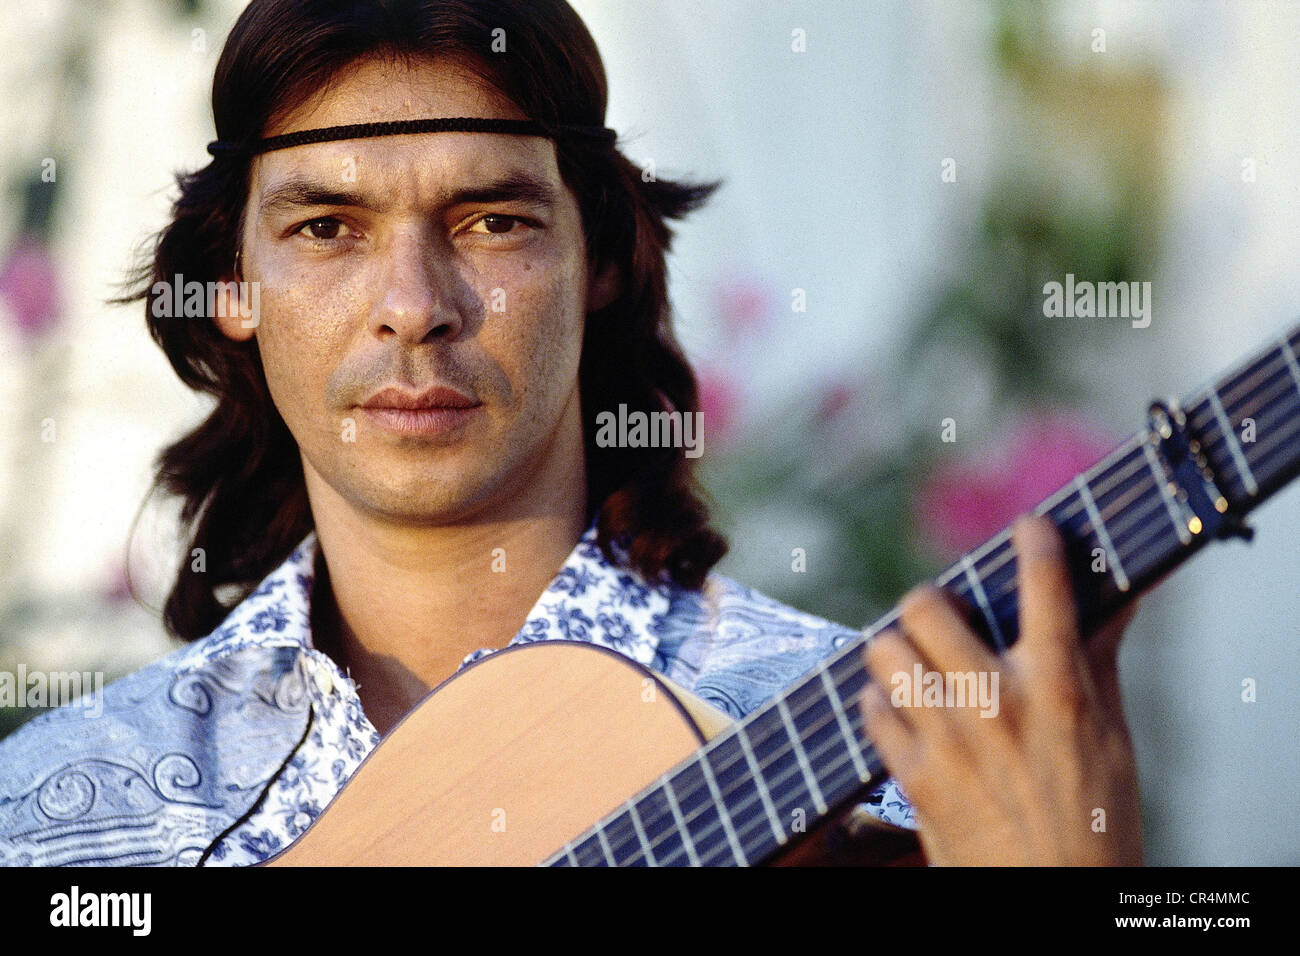 Gipsy Kings, French music group, Canut Reyes, a member of the band, with guitar, portrait, Arles, 1988, Additional - Stock Image